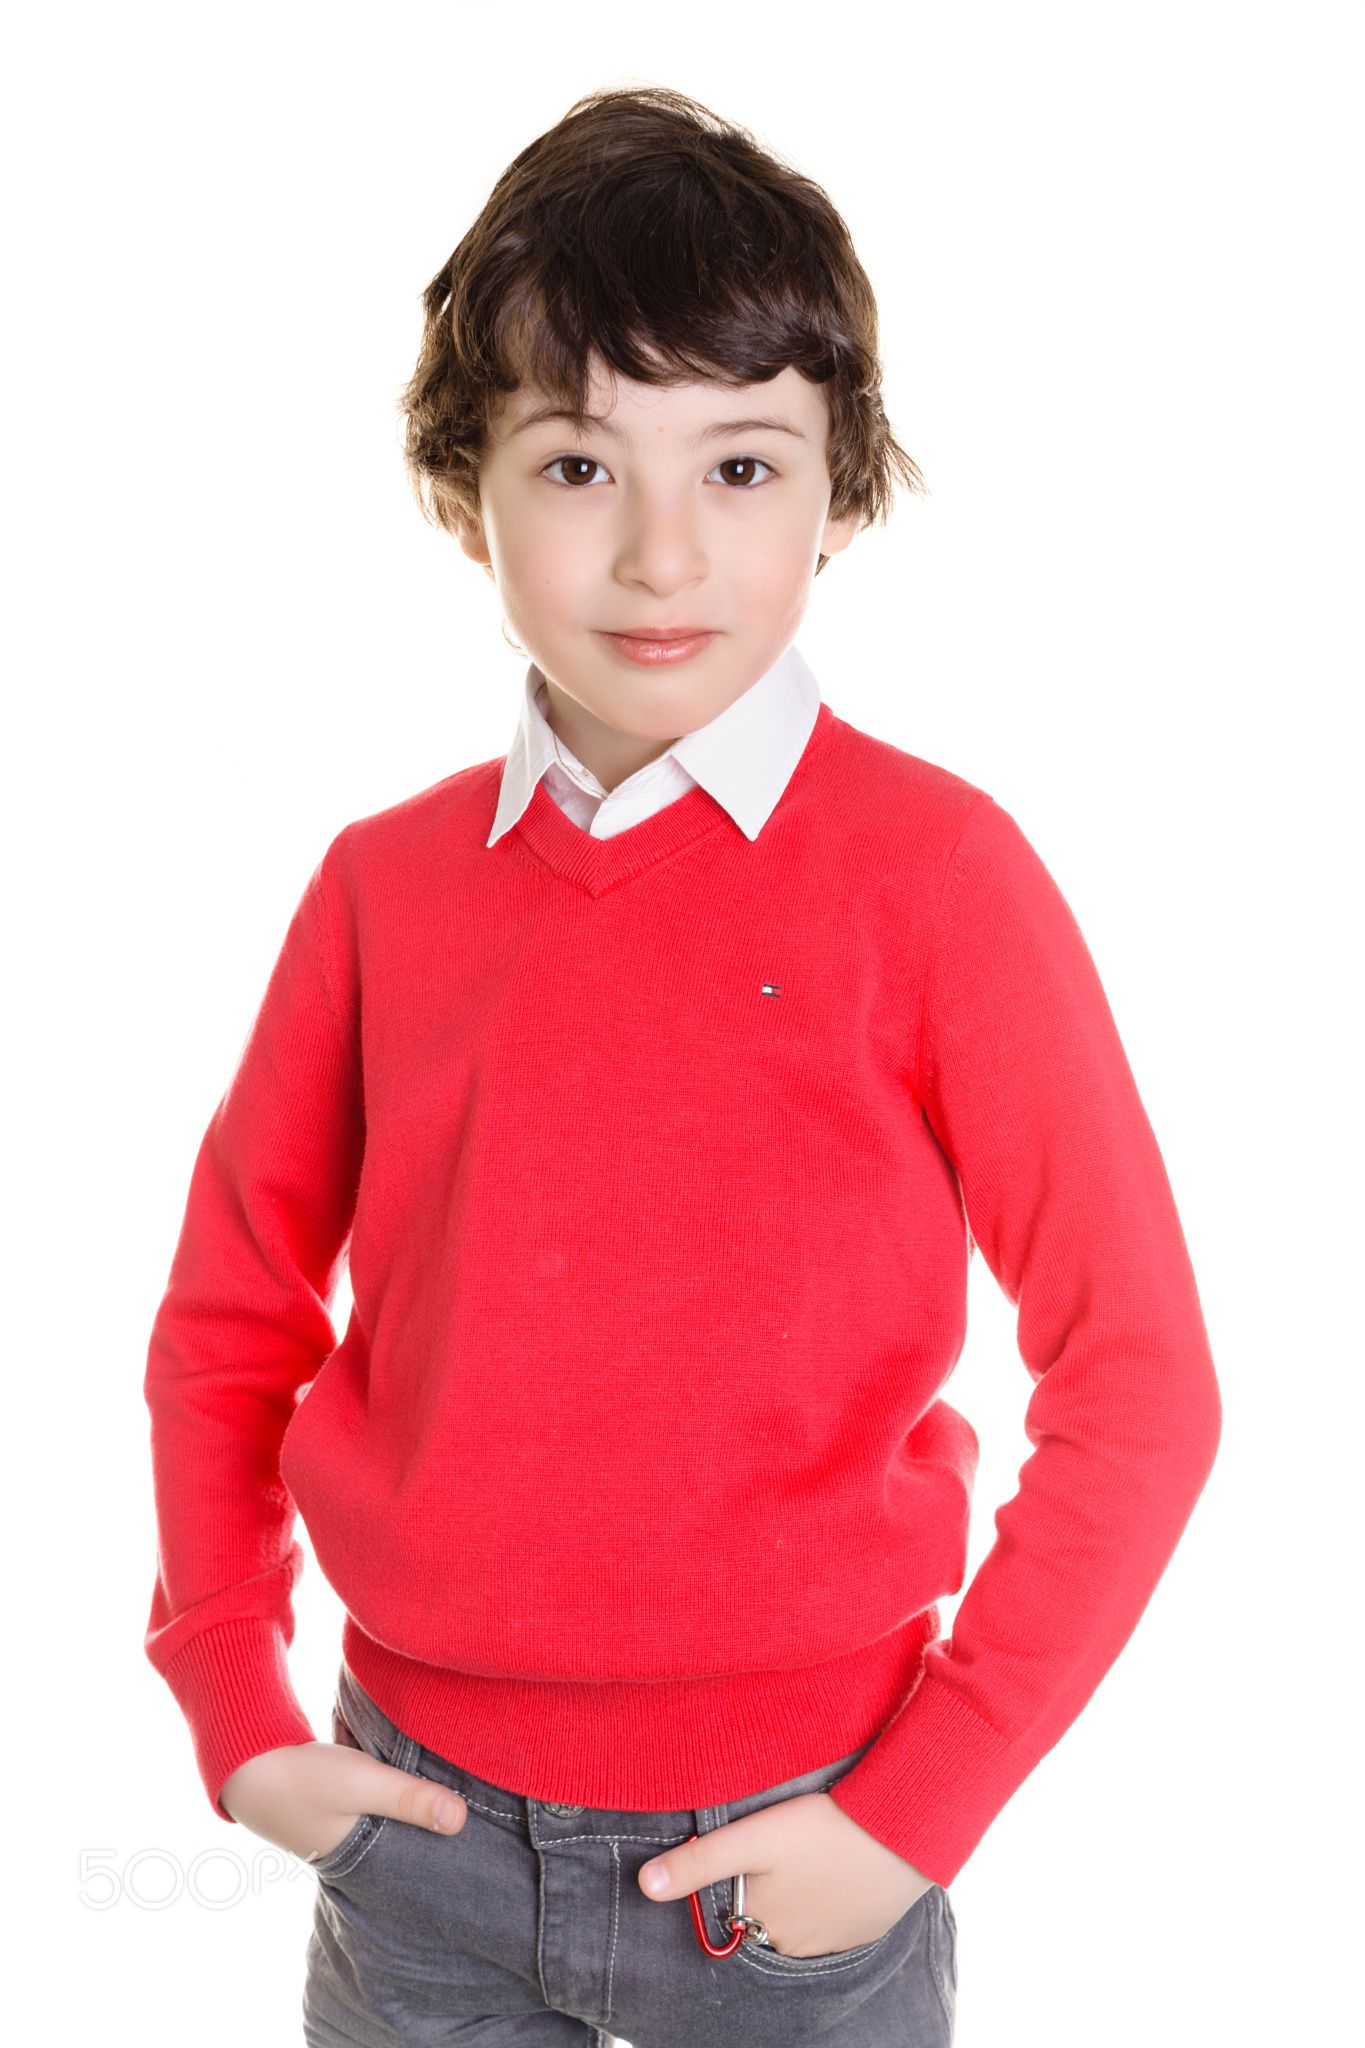 Portrait of a boy on a white background. - null